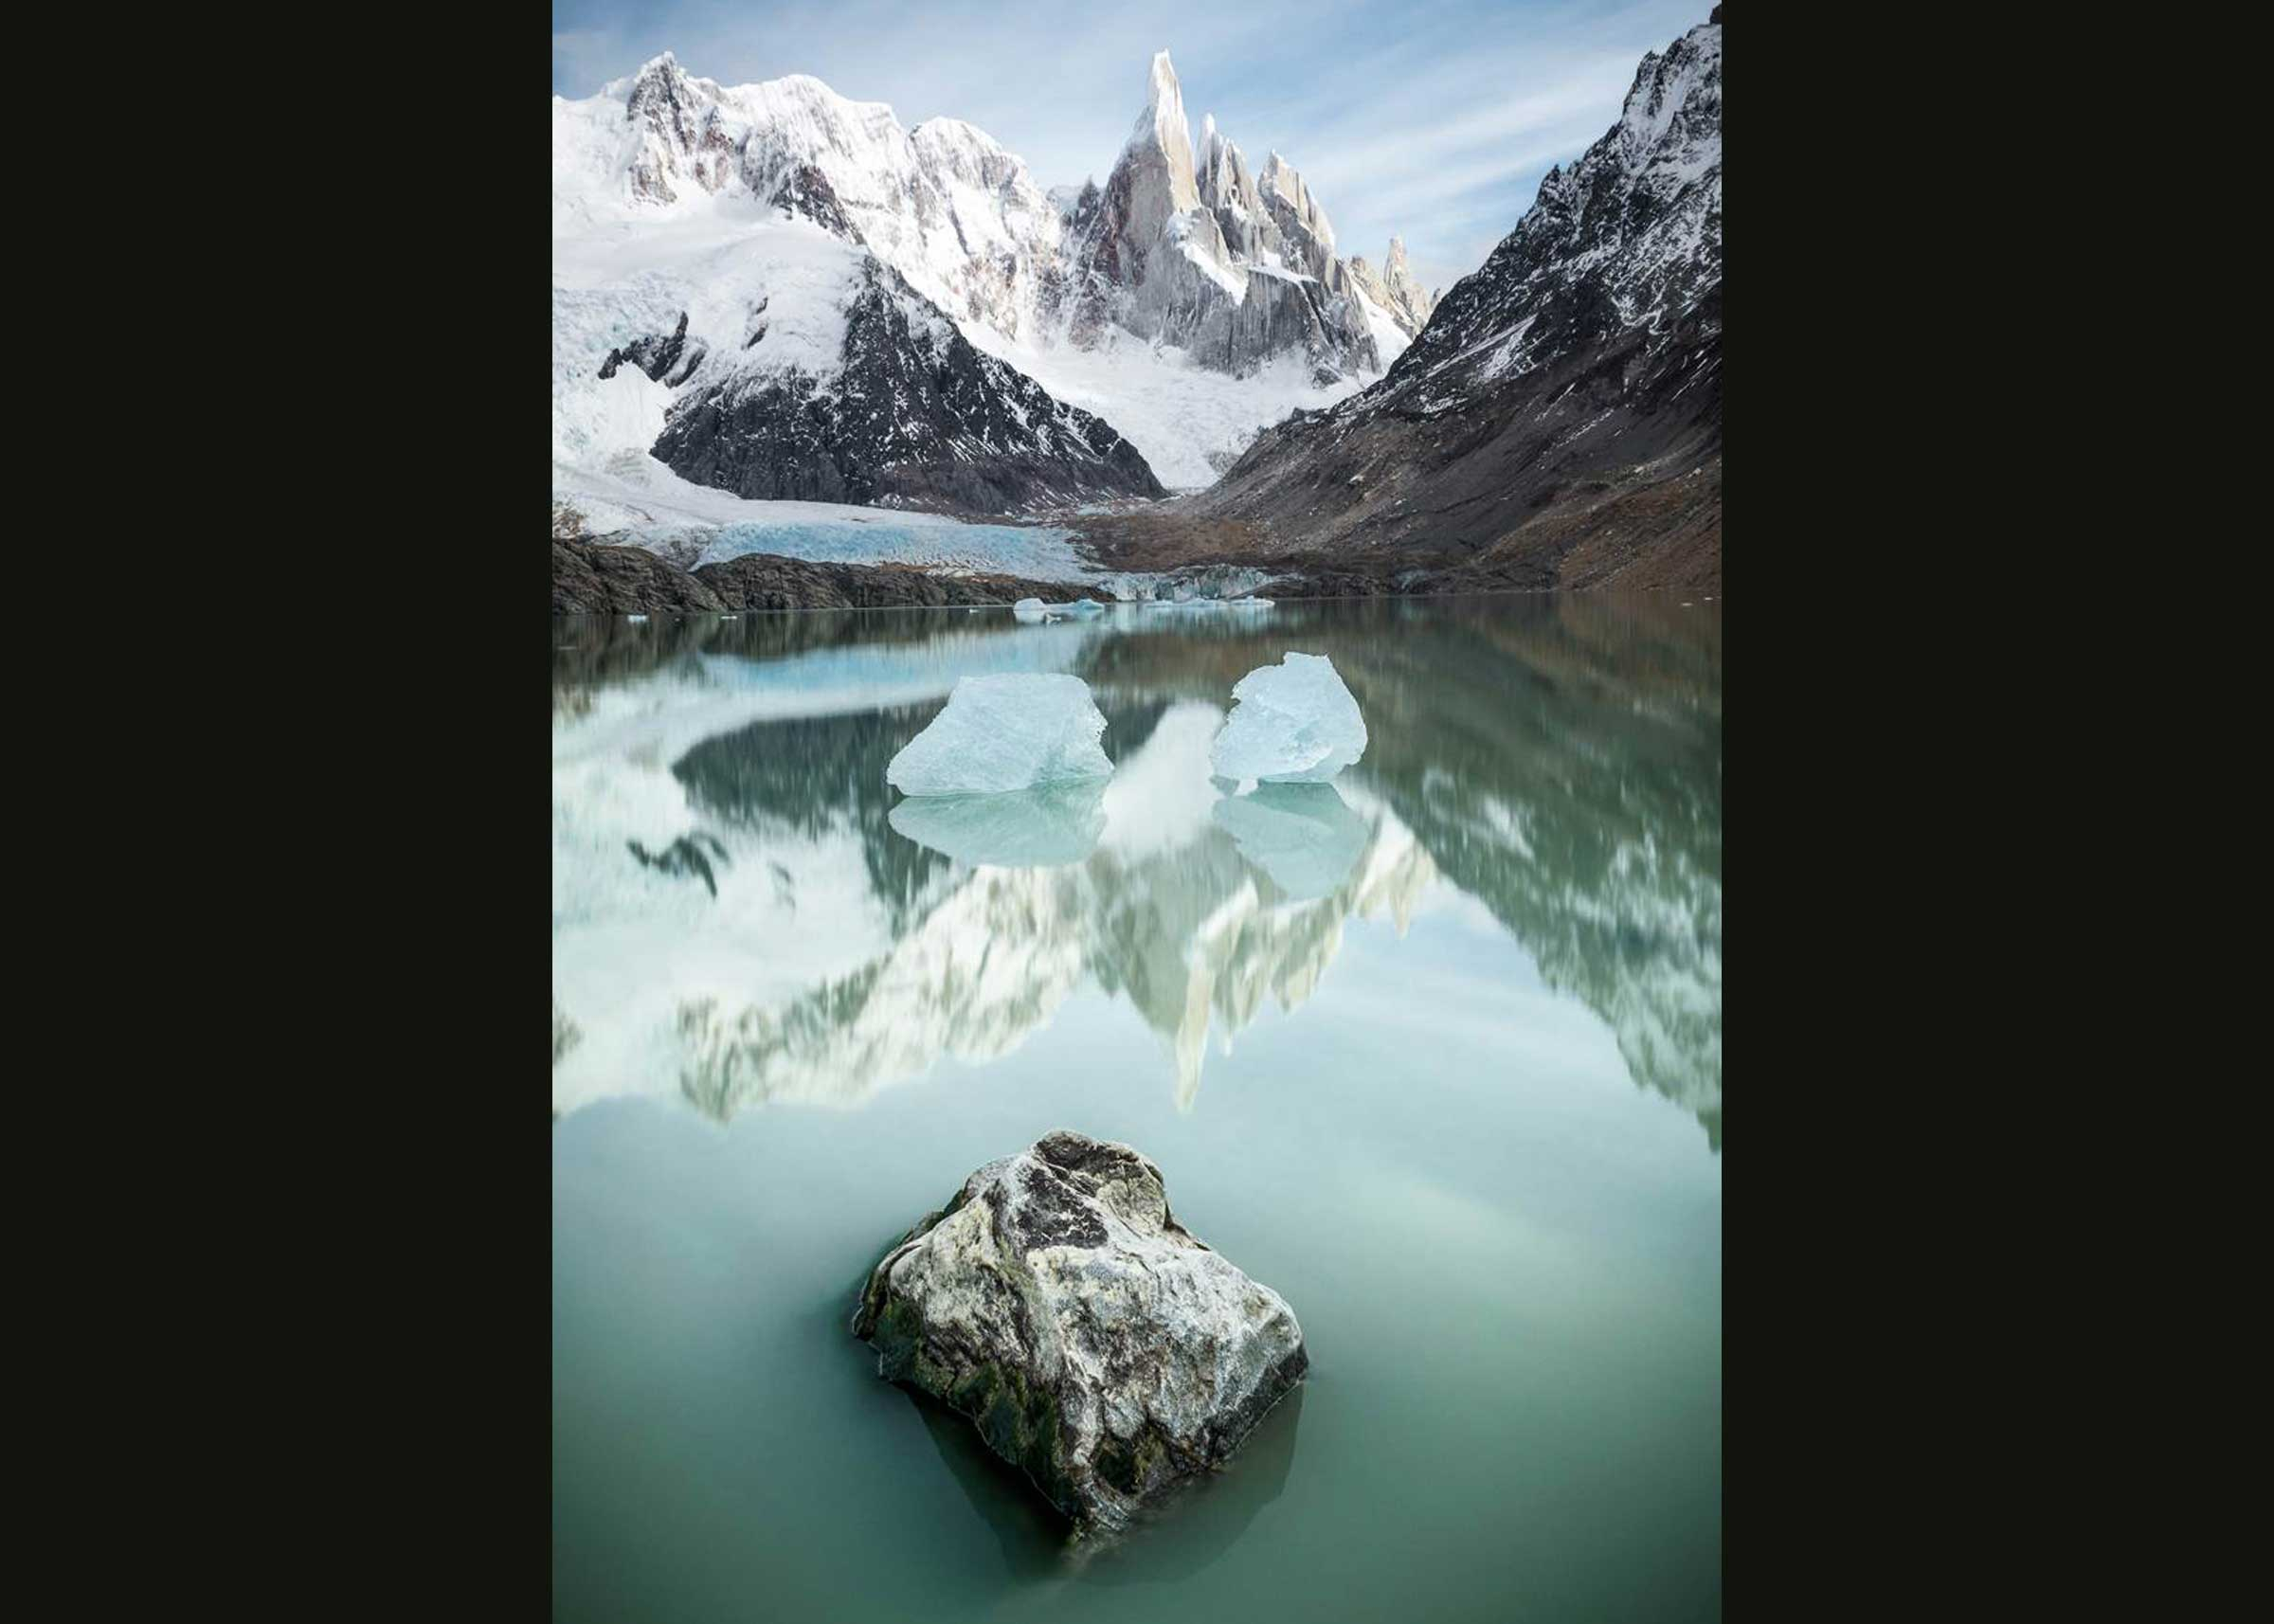 Cerro Torre by John Barwood